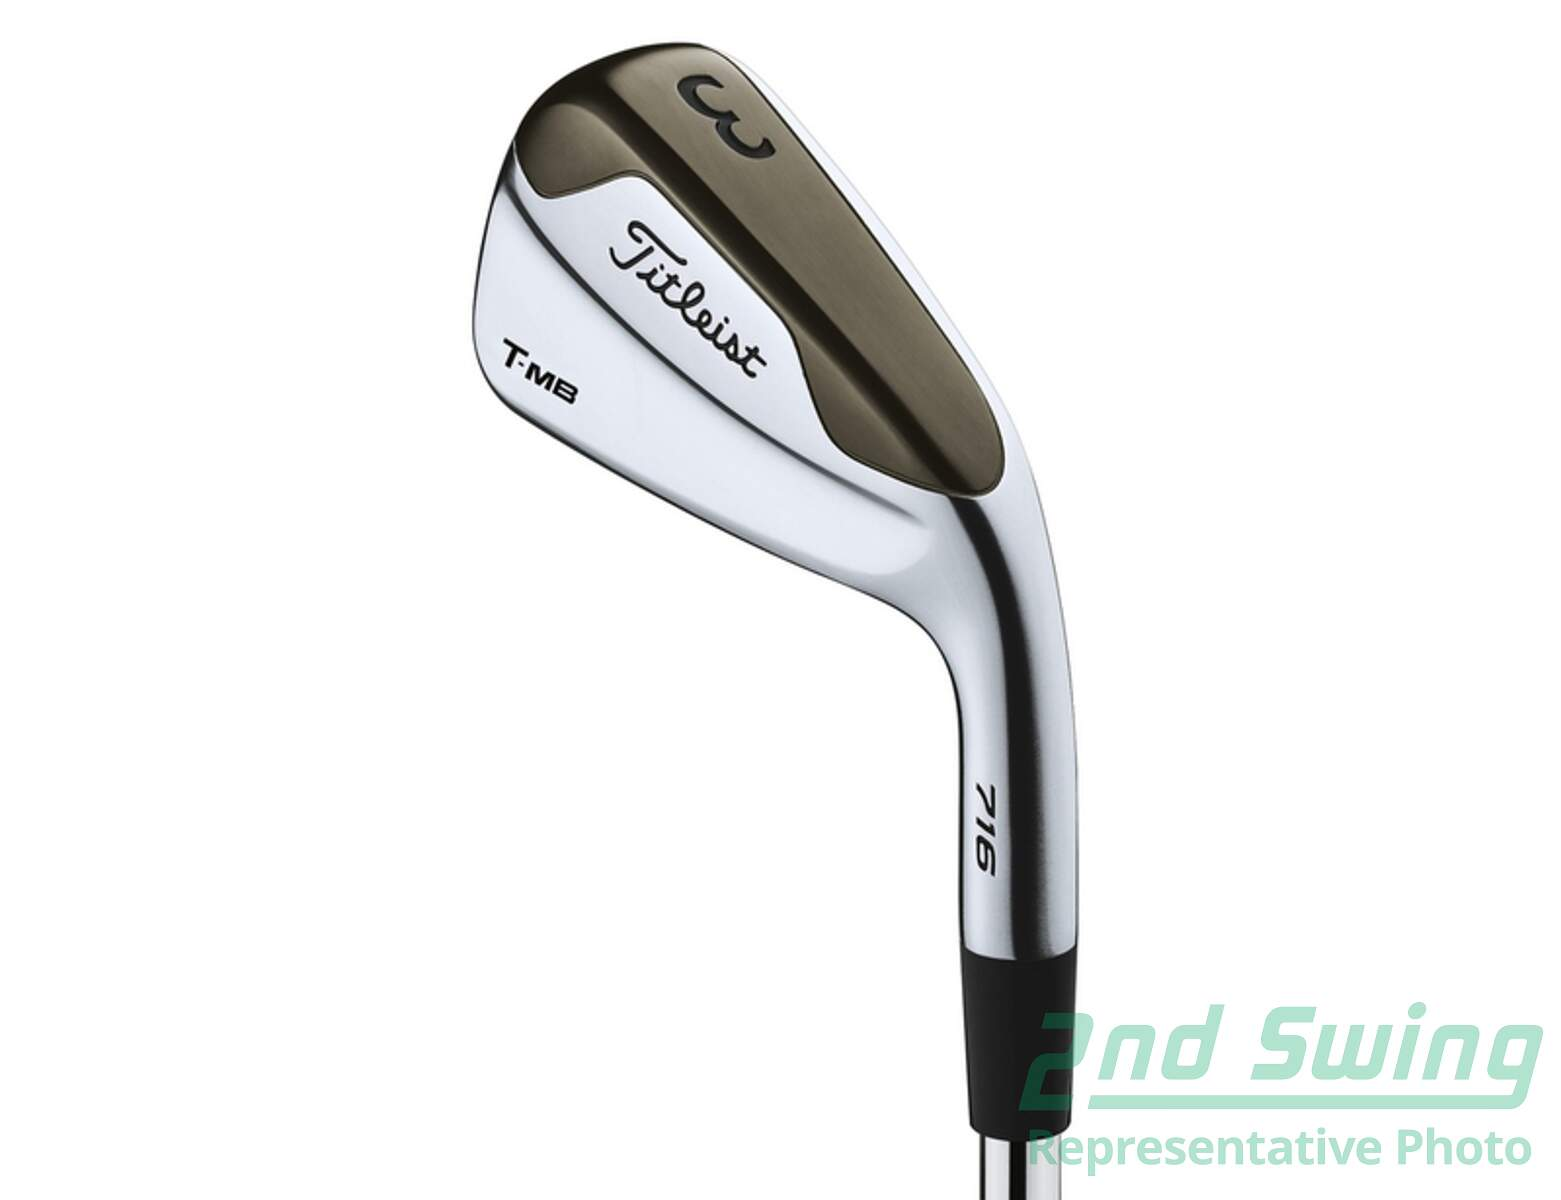 Leist 716 T Mb Hybrid 4 Iron Project X Pxi 6 0 Stiff 23 Right Handed New Golf Club 2nd Swing